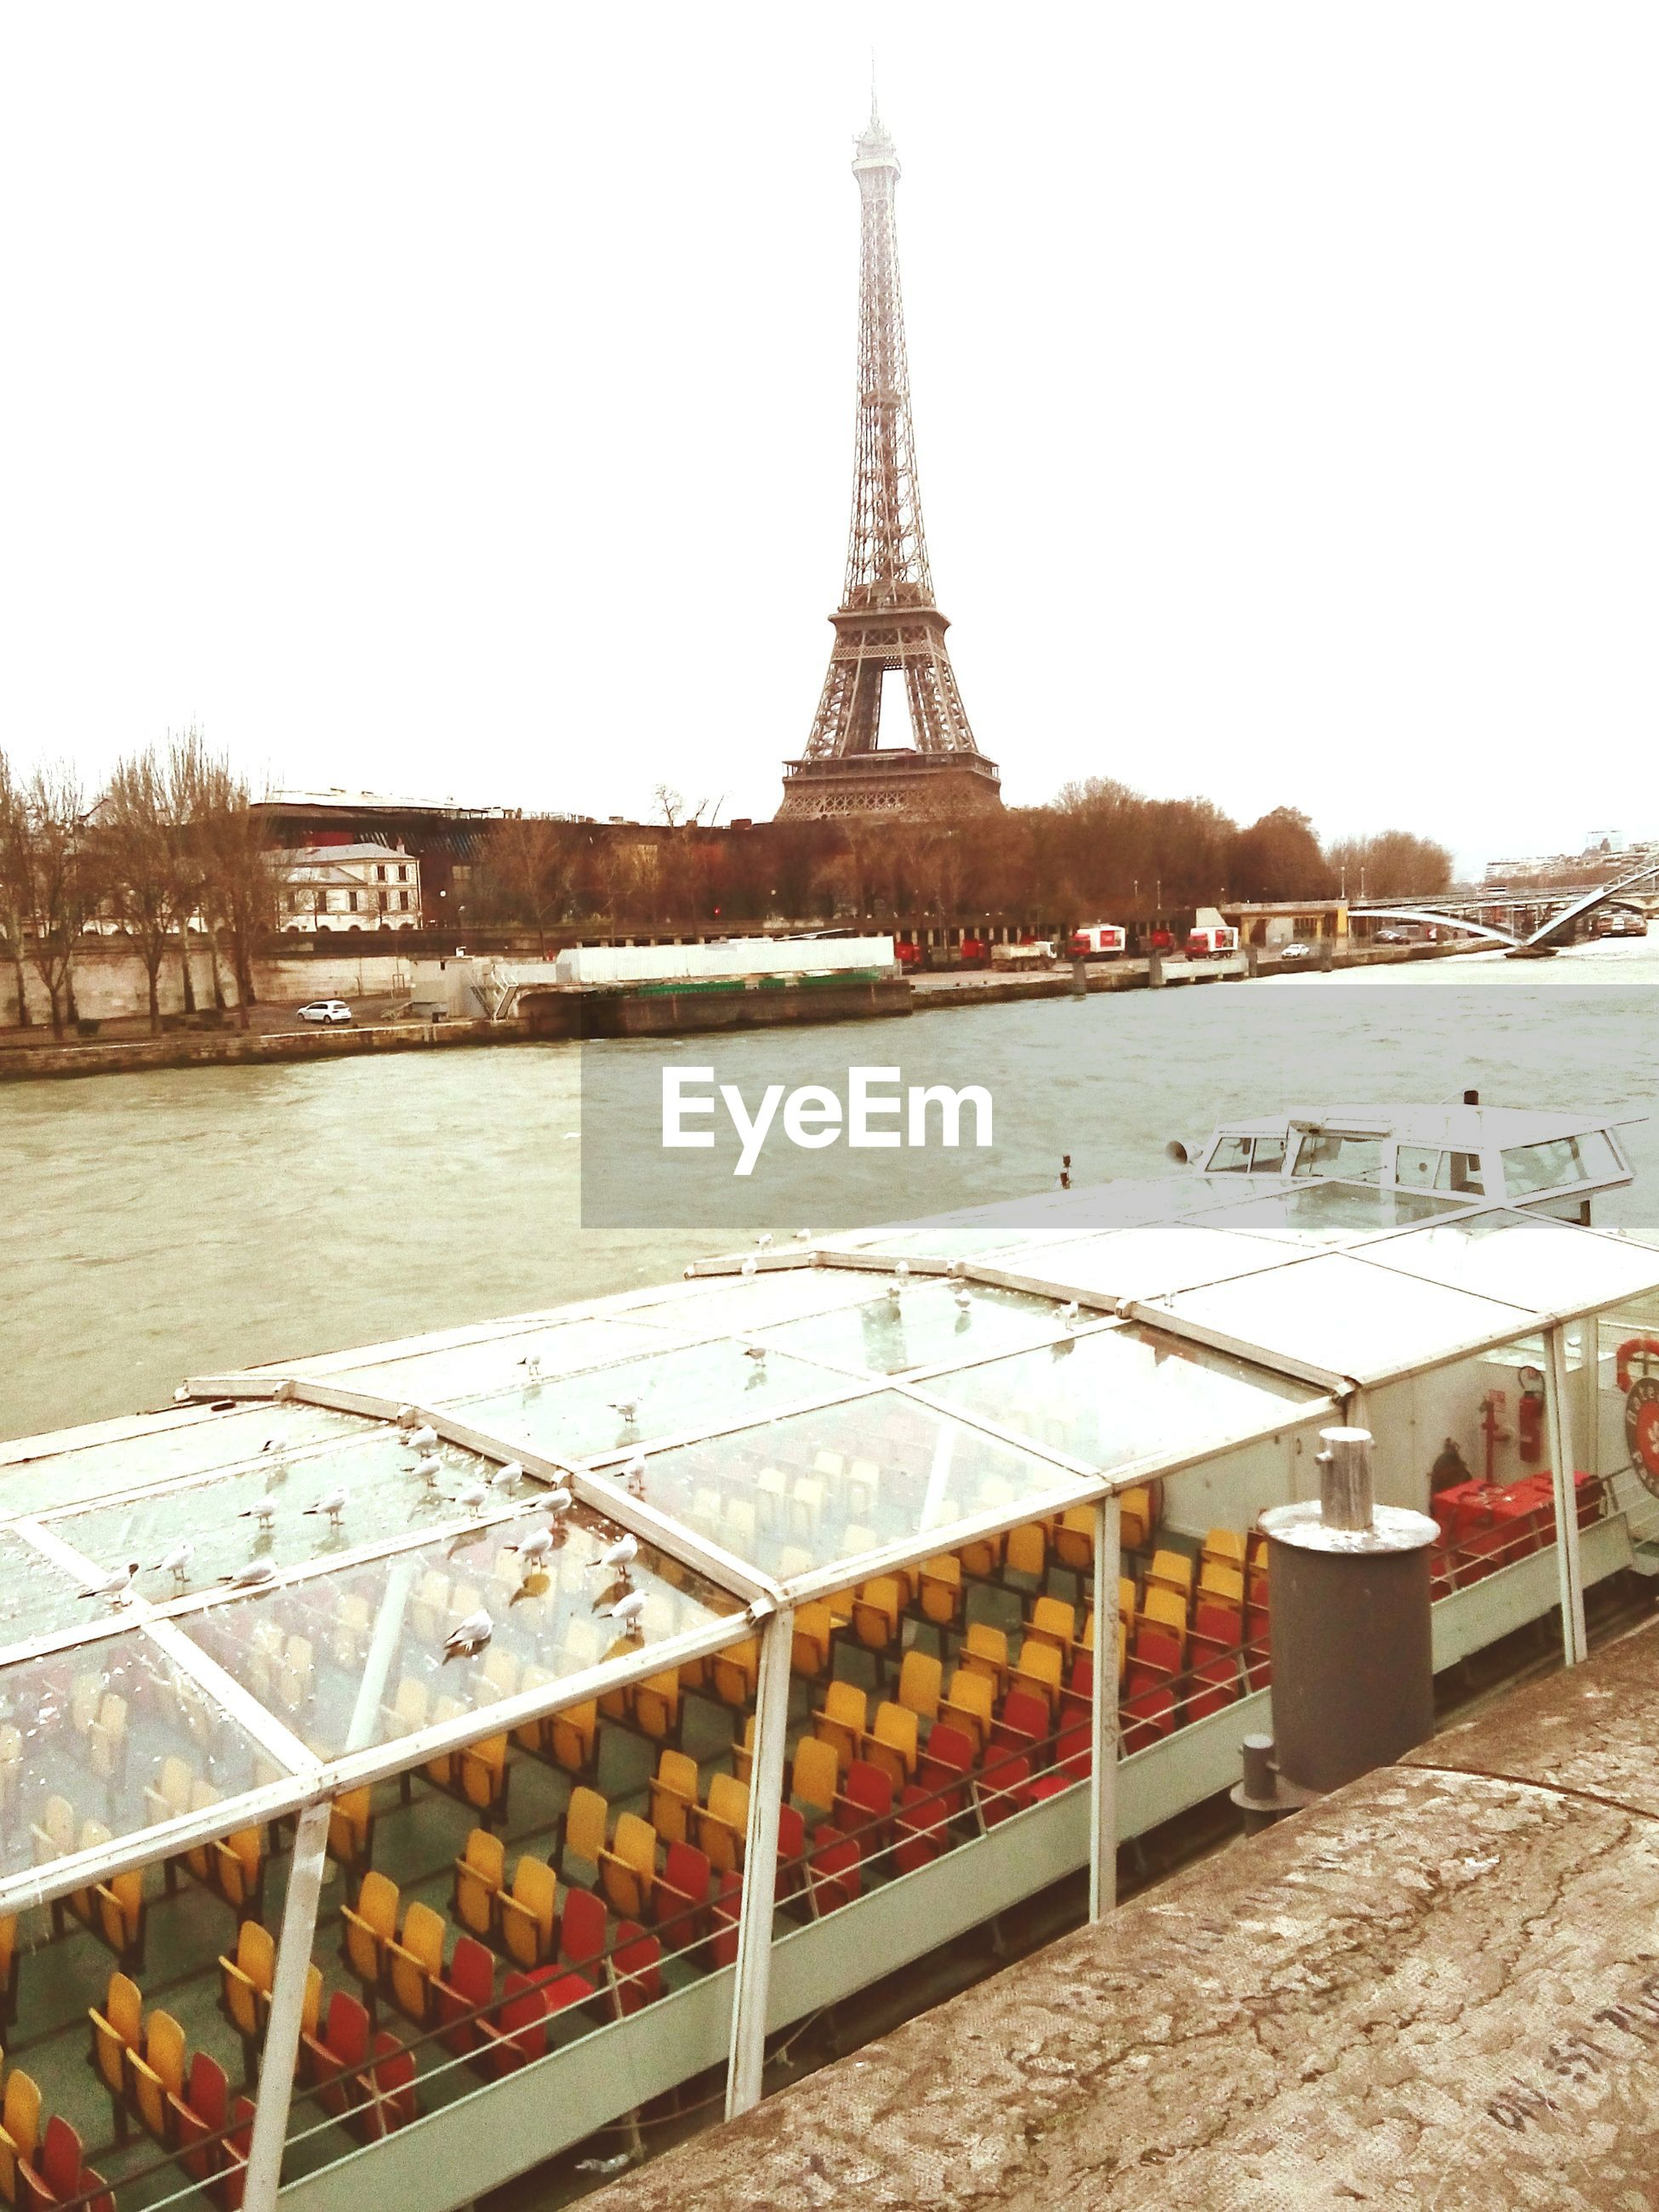 built structure, architecture, clear sky, building exterior, famous place, travel destinations, water, international landmark, tourism, eiffel tower, travel, capital cities, river, culture, metal, bridge - man made structure, city, outdoors, day, history